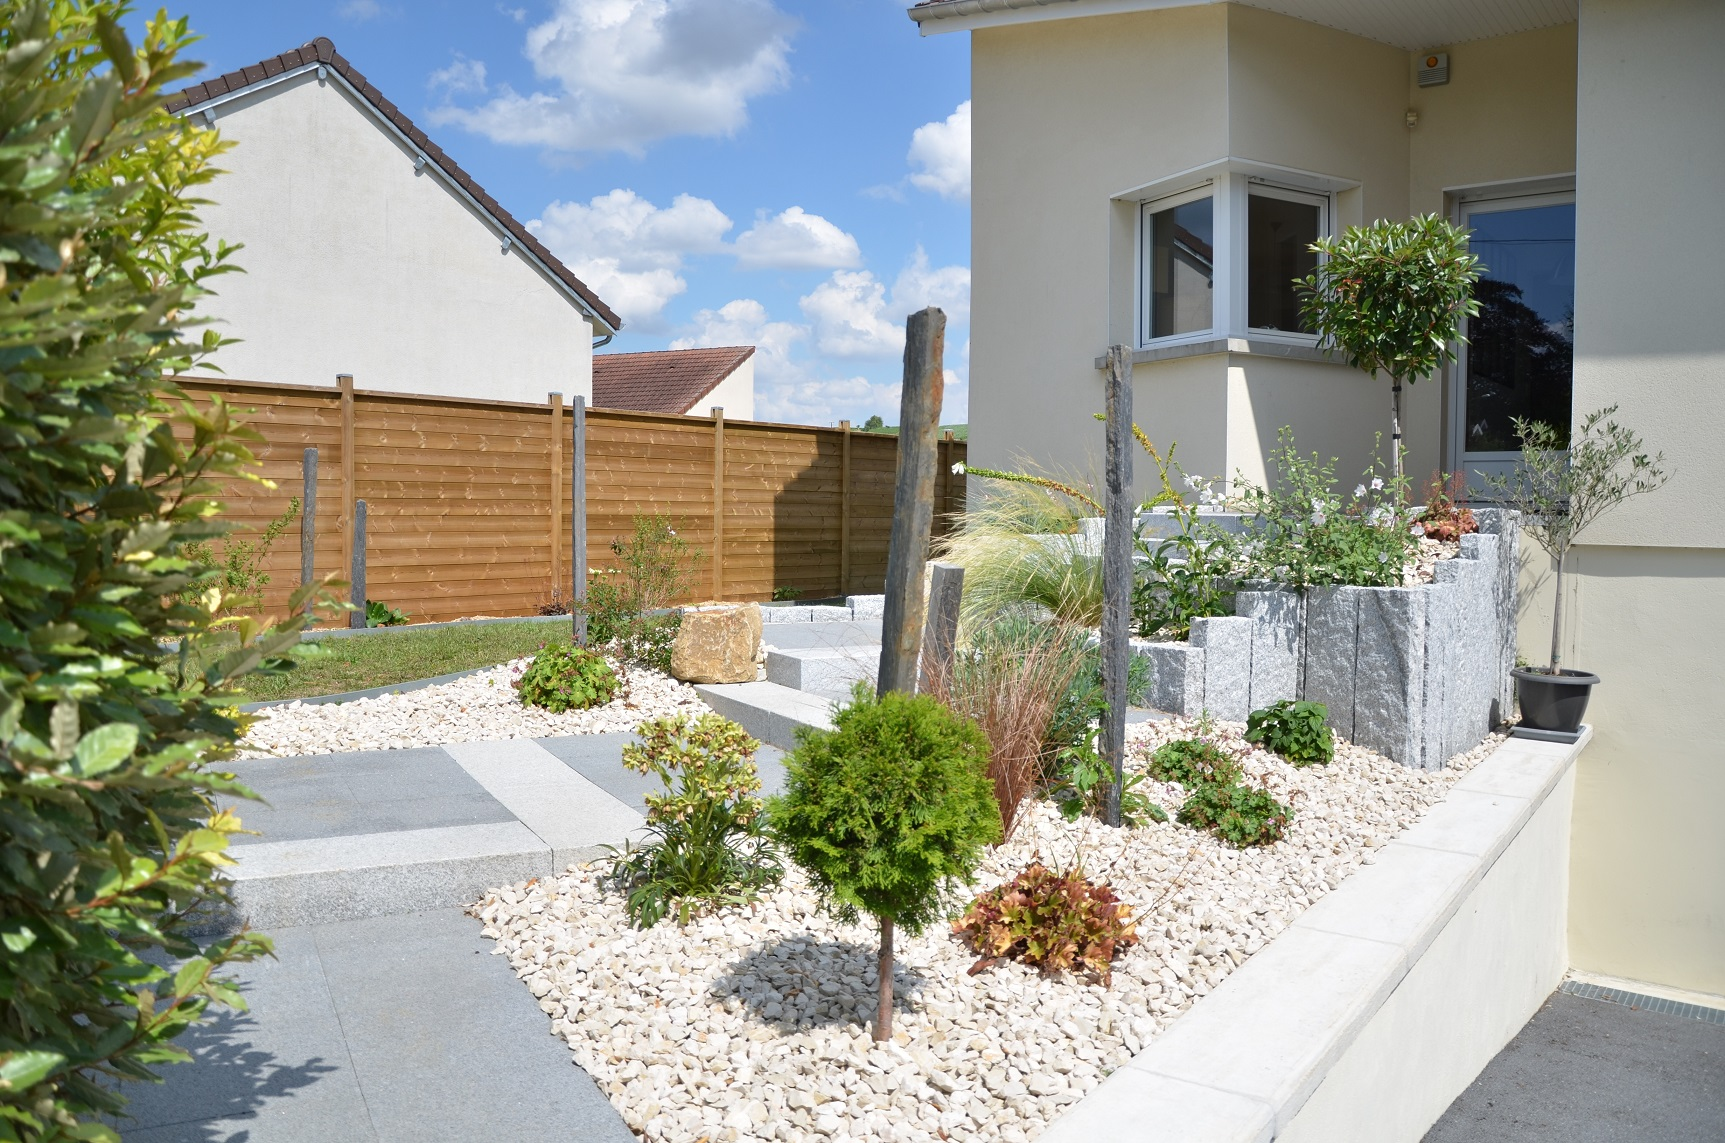 All e acc s maison garage fl jardin paysagiste dans la for Amenagement massif devant maison